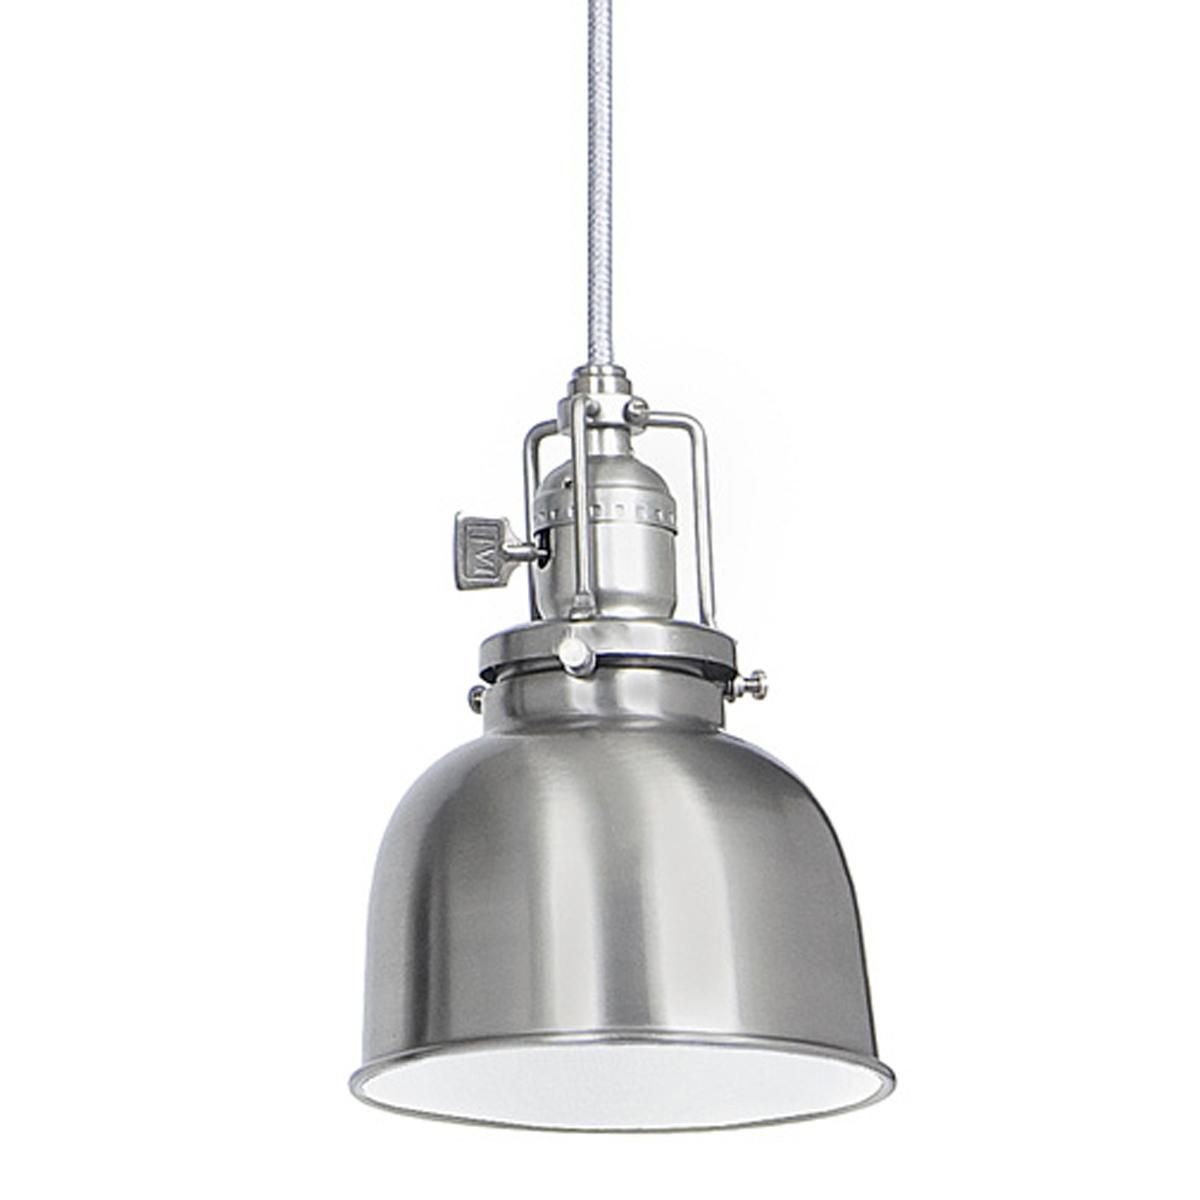 Industrial Pendant Lights For Kitchen Dome Shade Industrial Pendant In Kitchen Industrial And Pendants